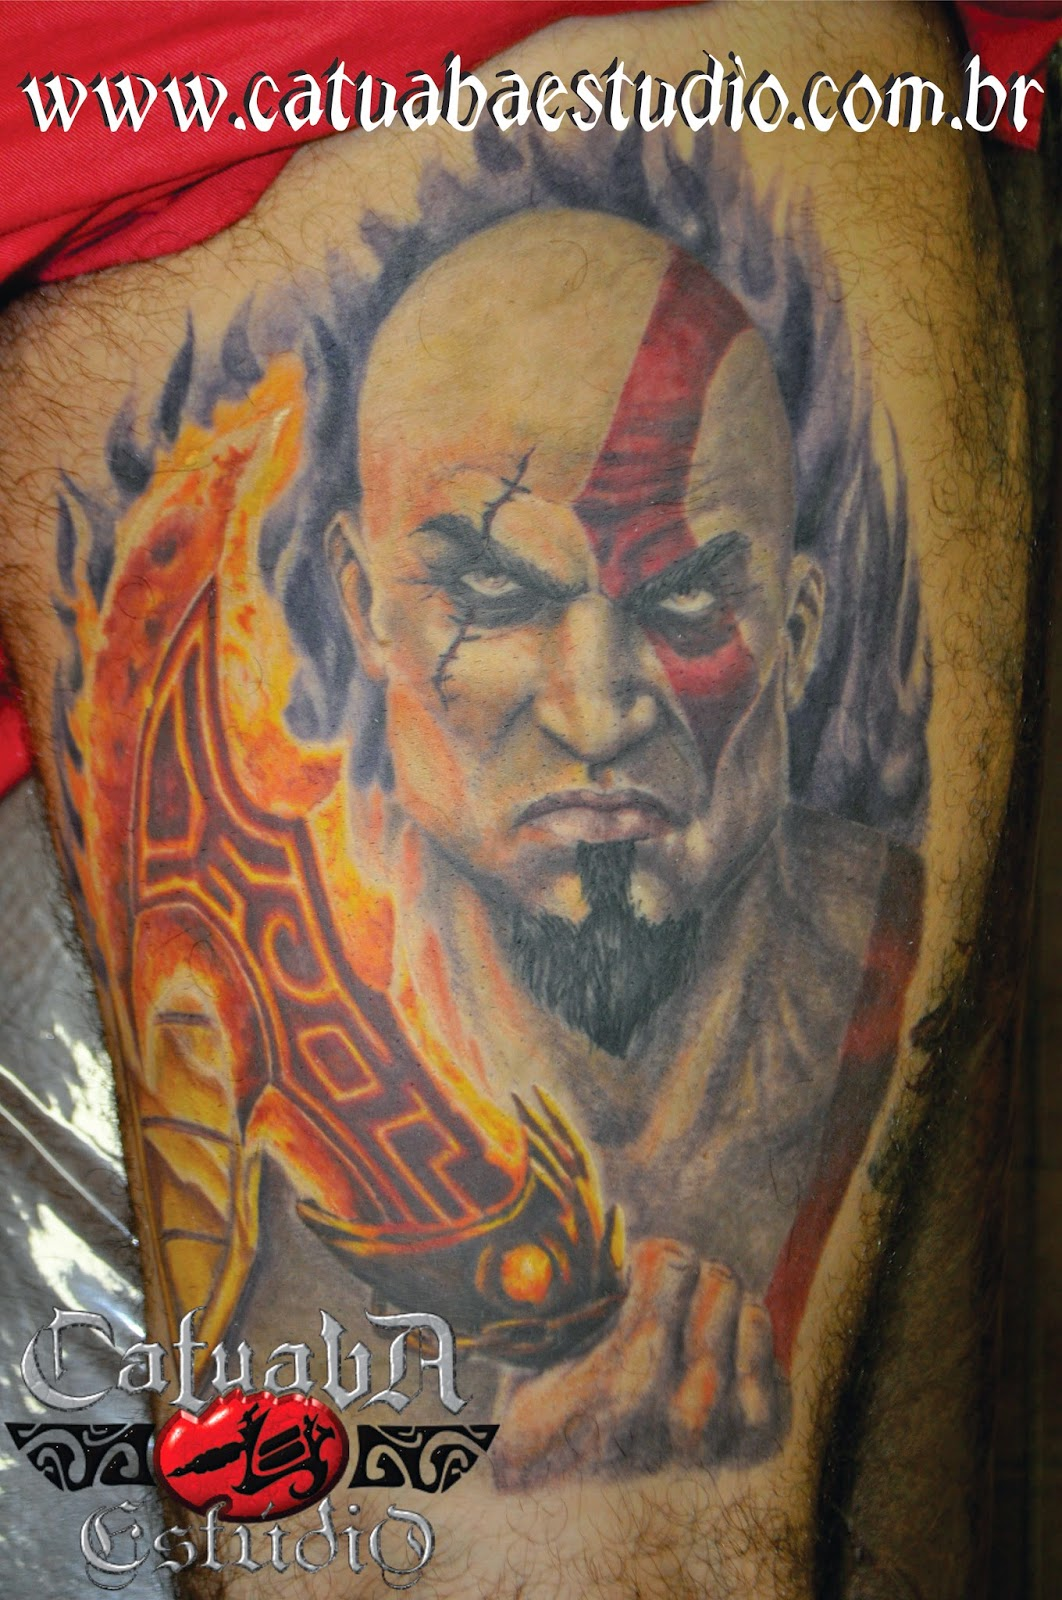 Catuaba videos 2015 personal blog for Kratos tattoo design